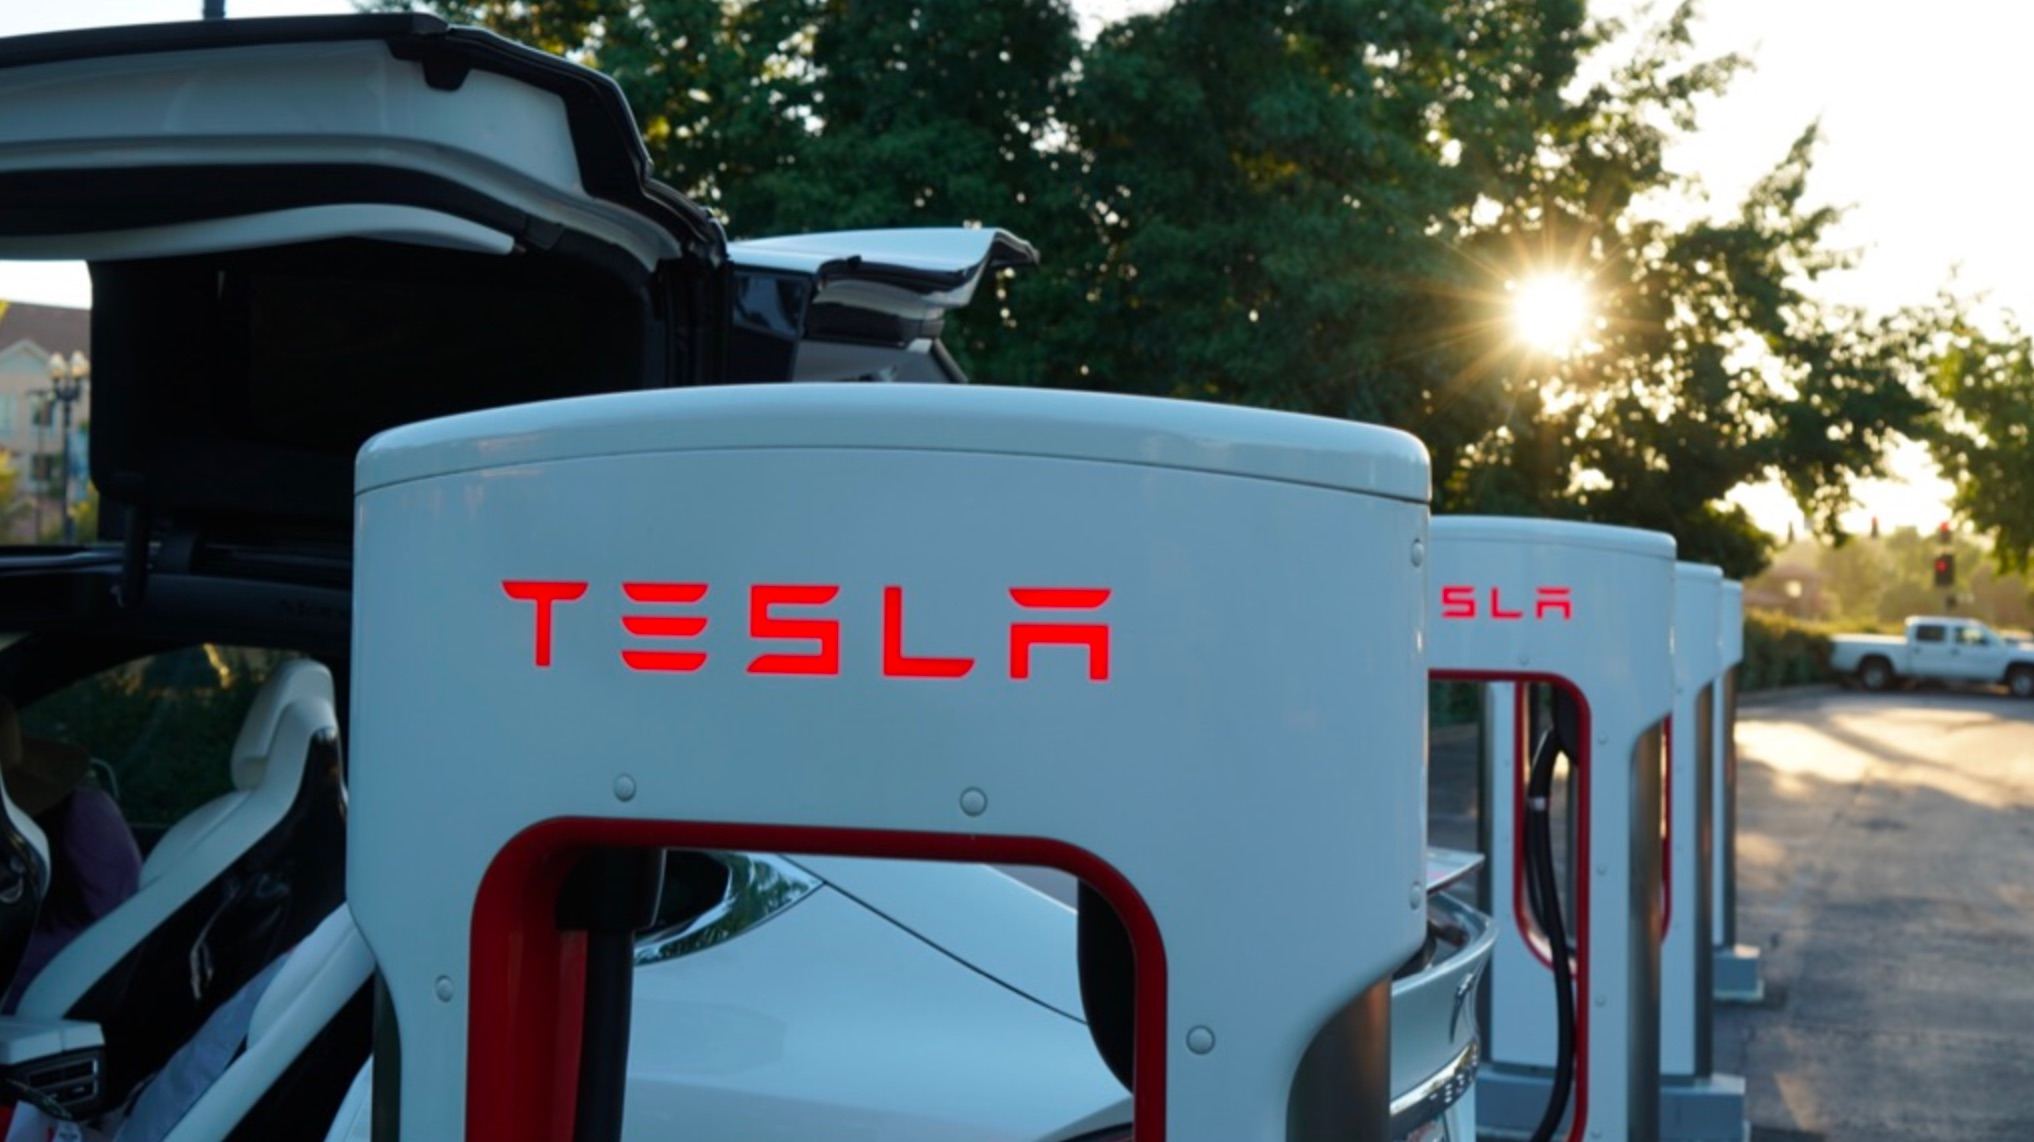 tesla-supercharger-logo-falcon-wing